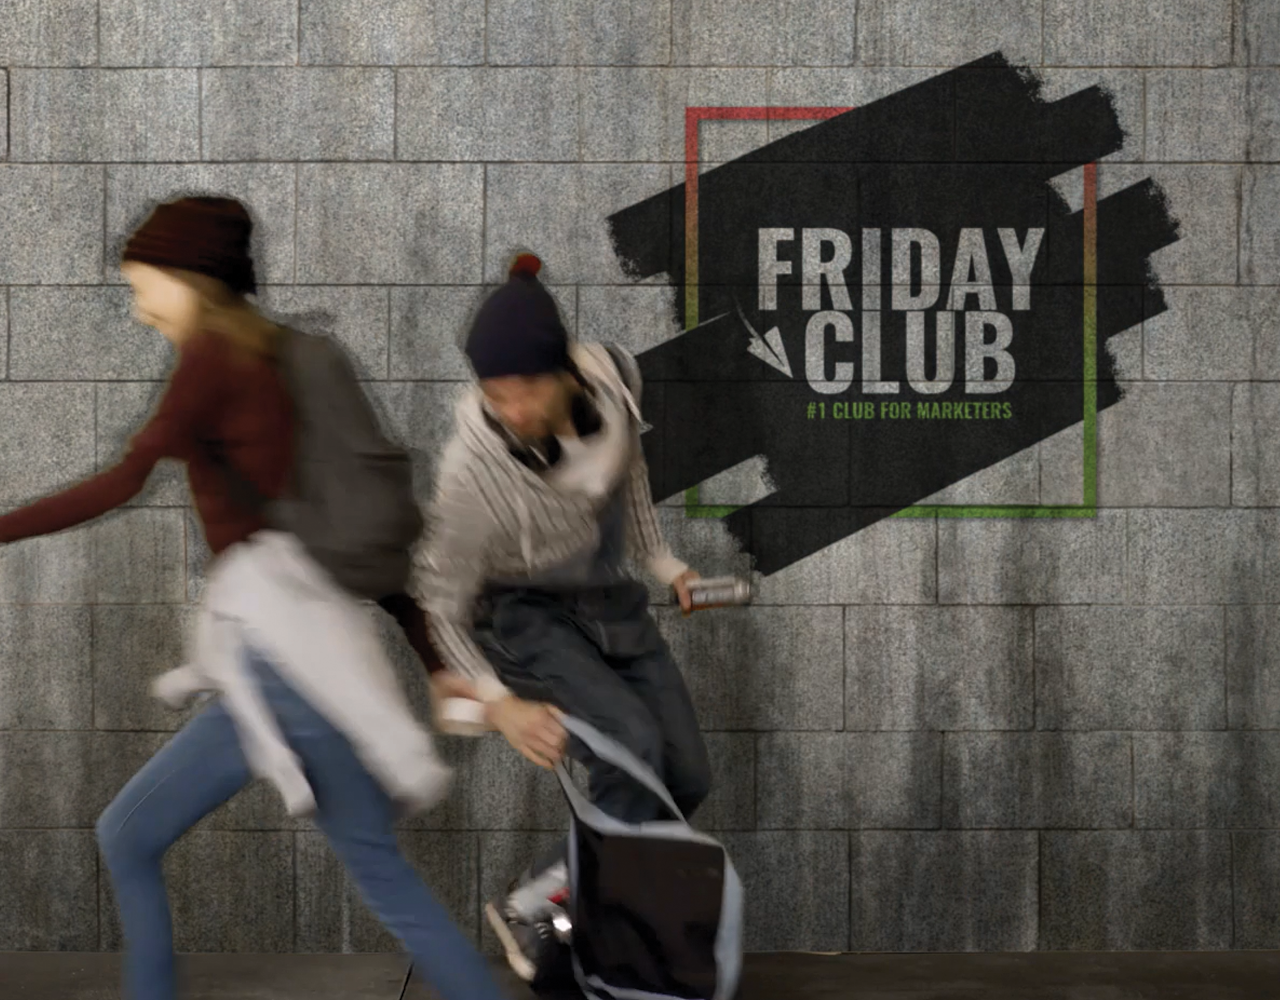 The Friday club. #1 Club for marketers